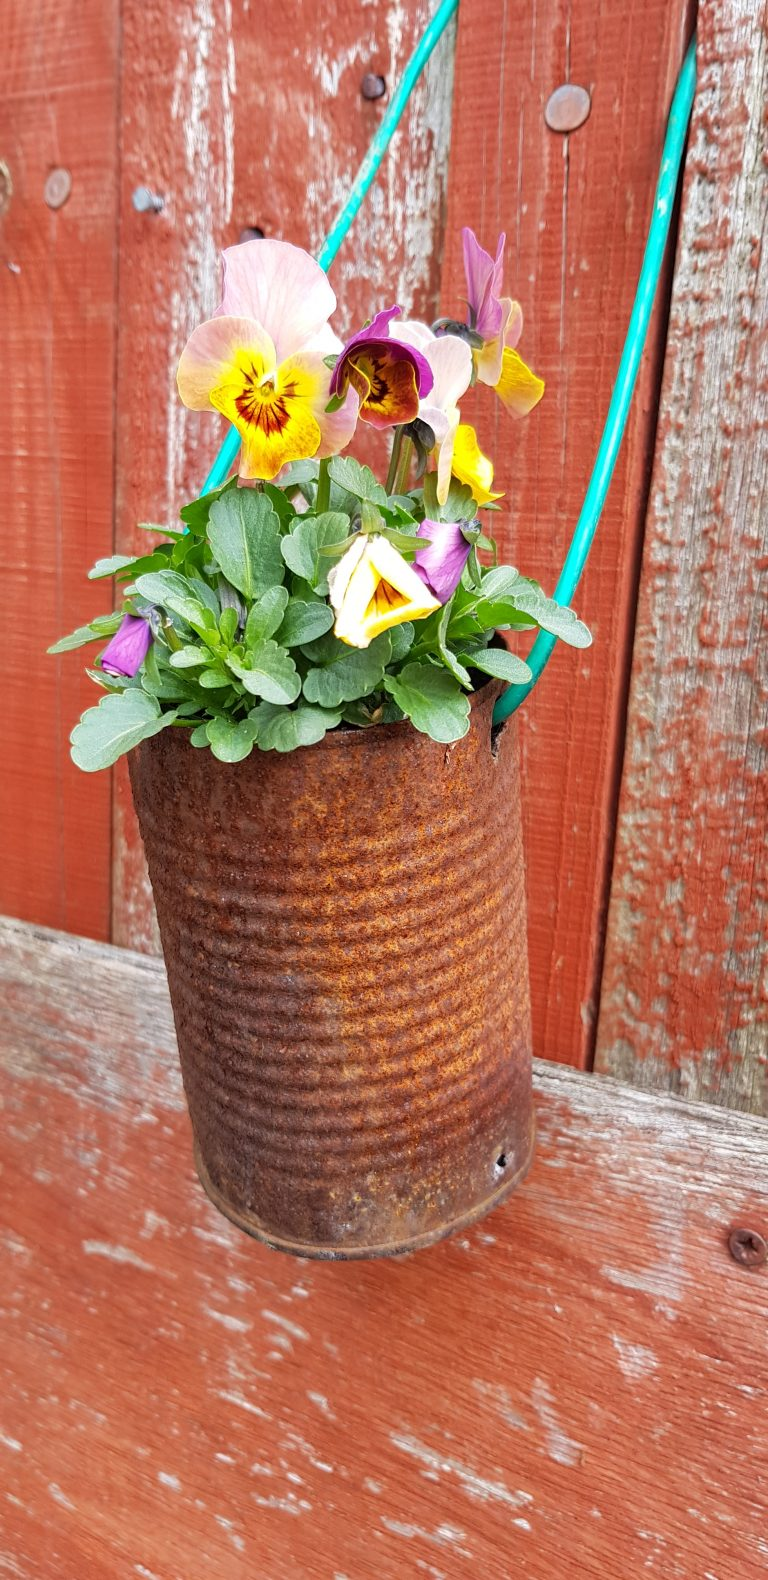 Garden crafts for kids. Tin can flower pot. Give these diy planters ago made from metal buckets or cans. Use them for ideas like floral arrangements, plants and indoor herbs. So simple but so cute.